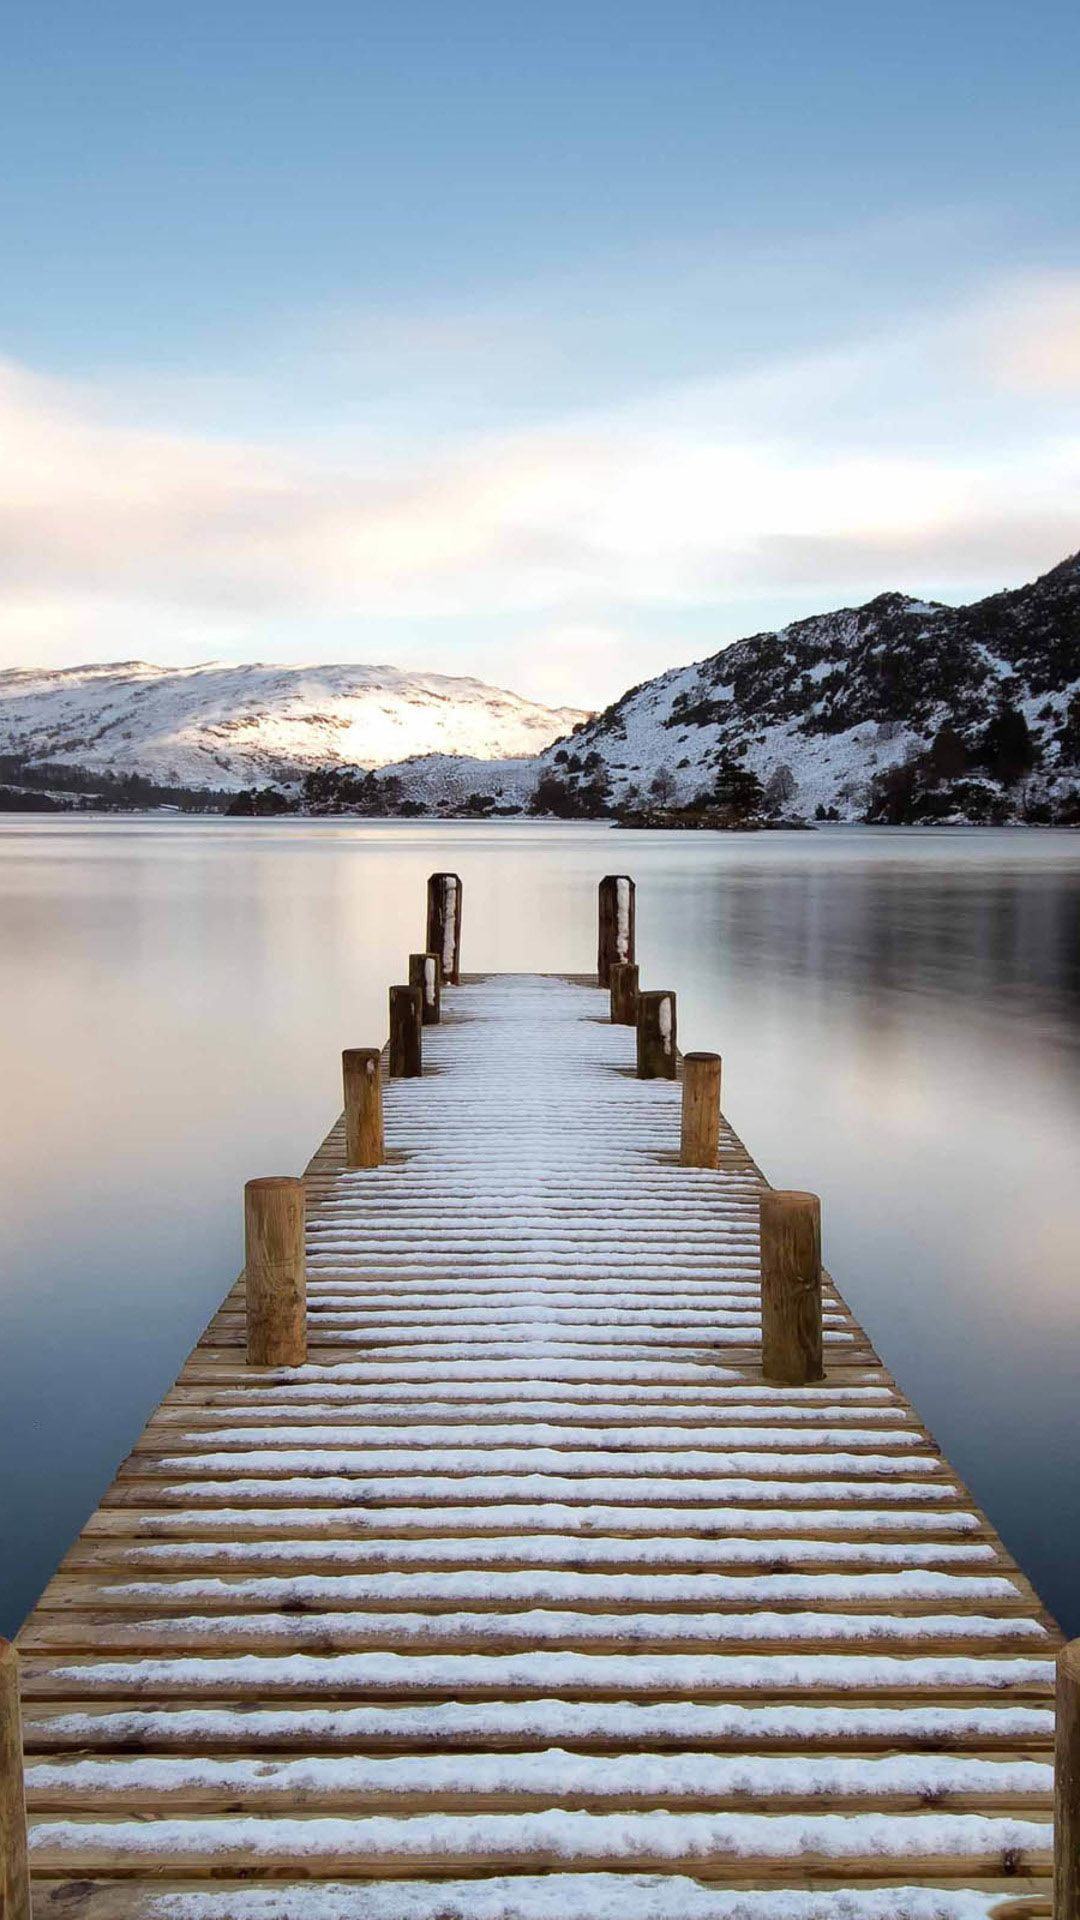 Mountain Lake Snowy Pier Mobile Wallpaper Iphone Android Samsung Pixel Xiaomi In 2020 Android Wallpaper Hd Nature Wallpapers Android Wallpaper Mountain